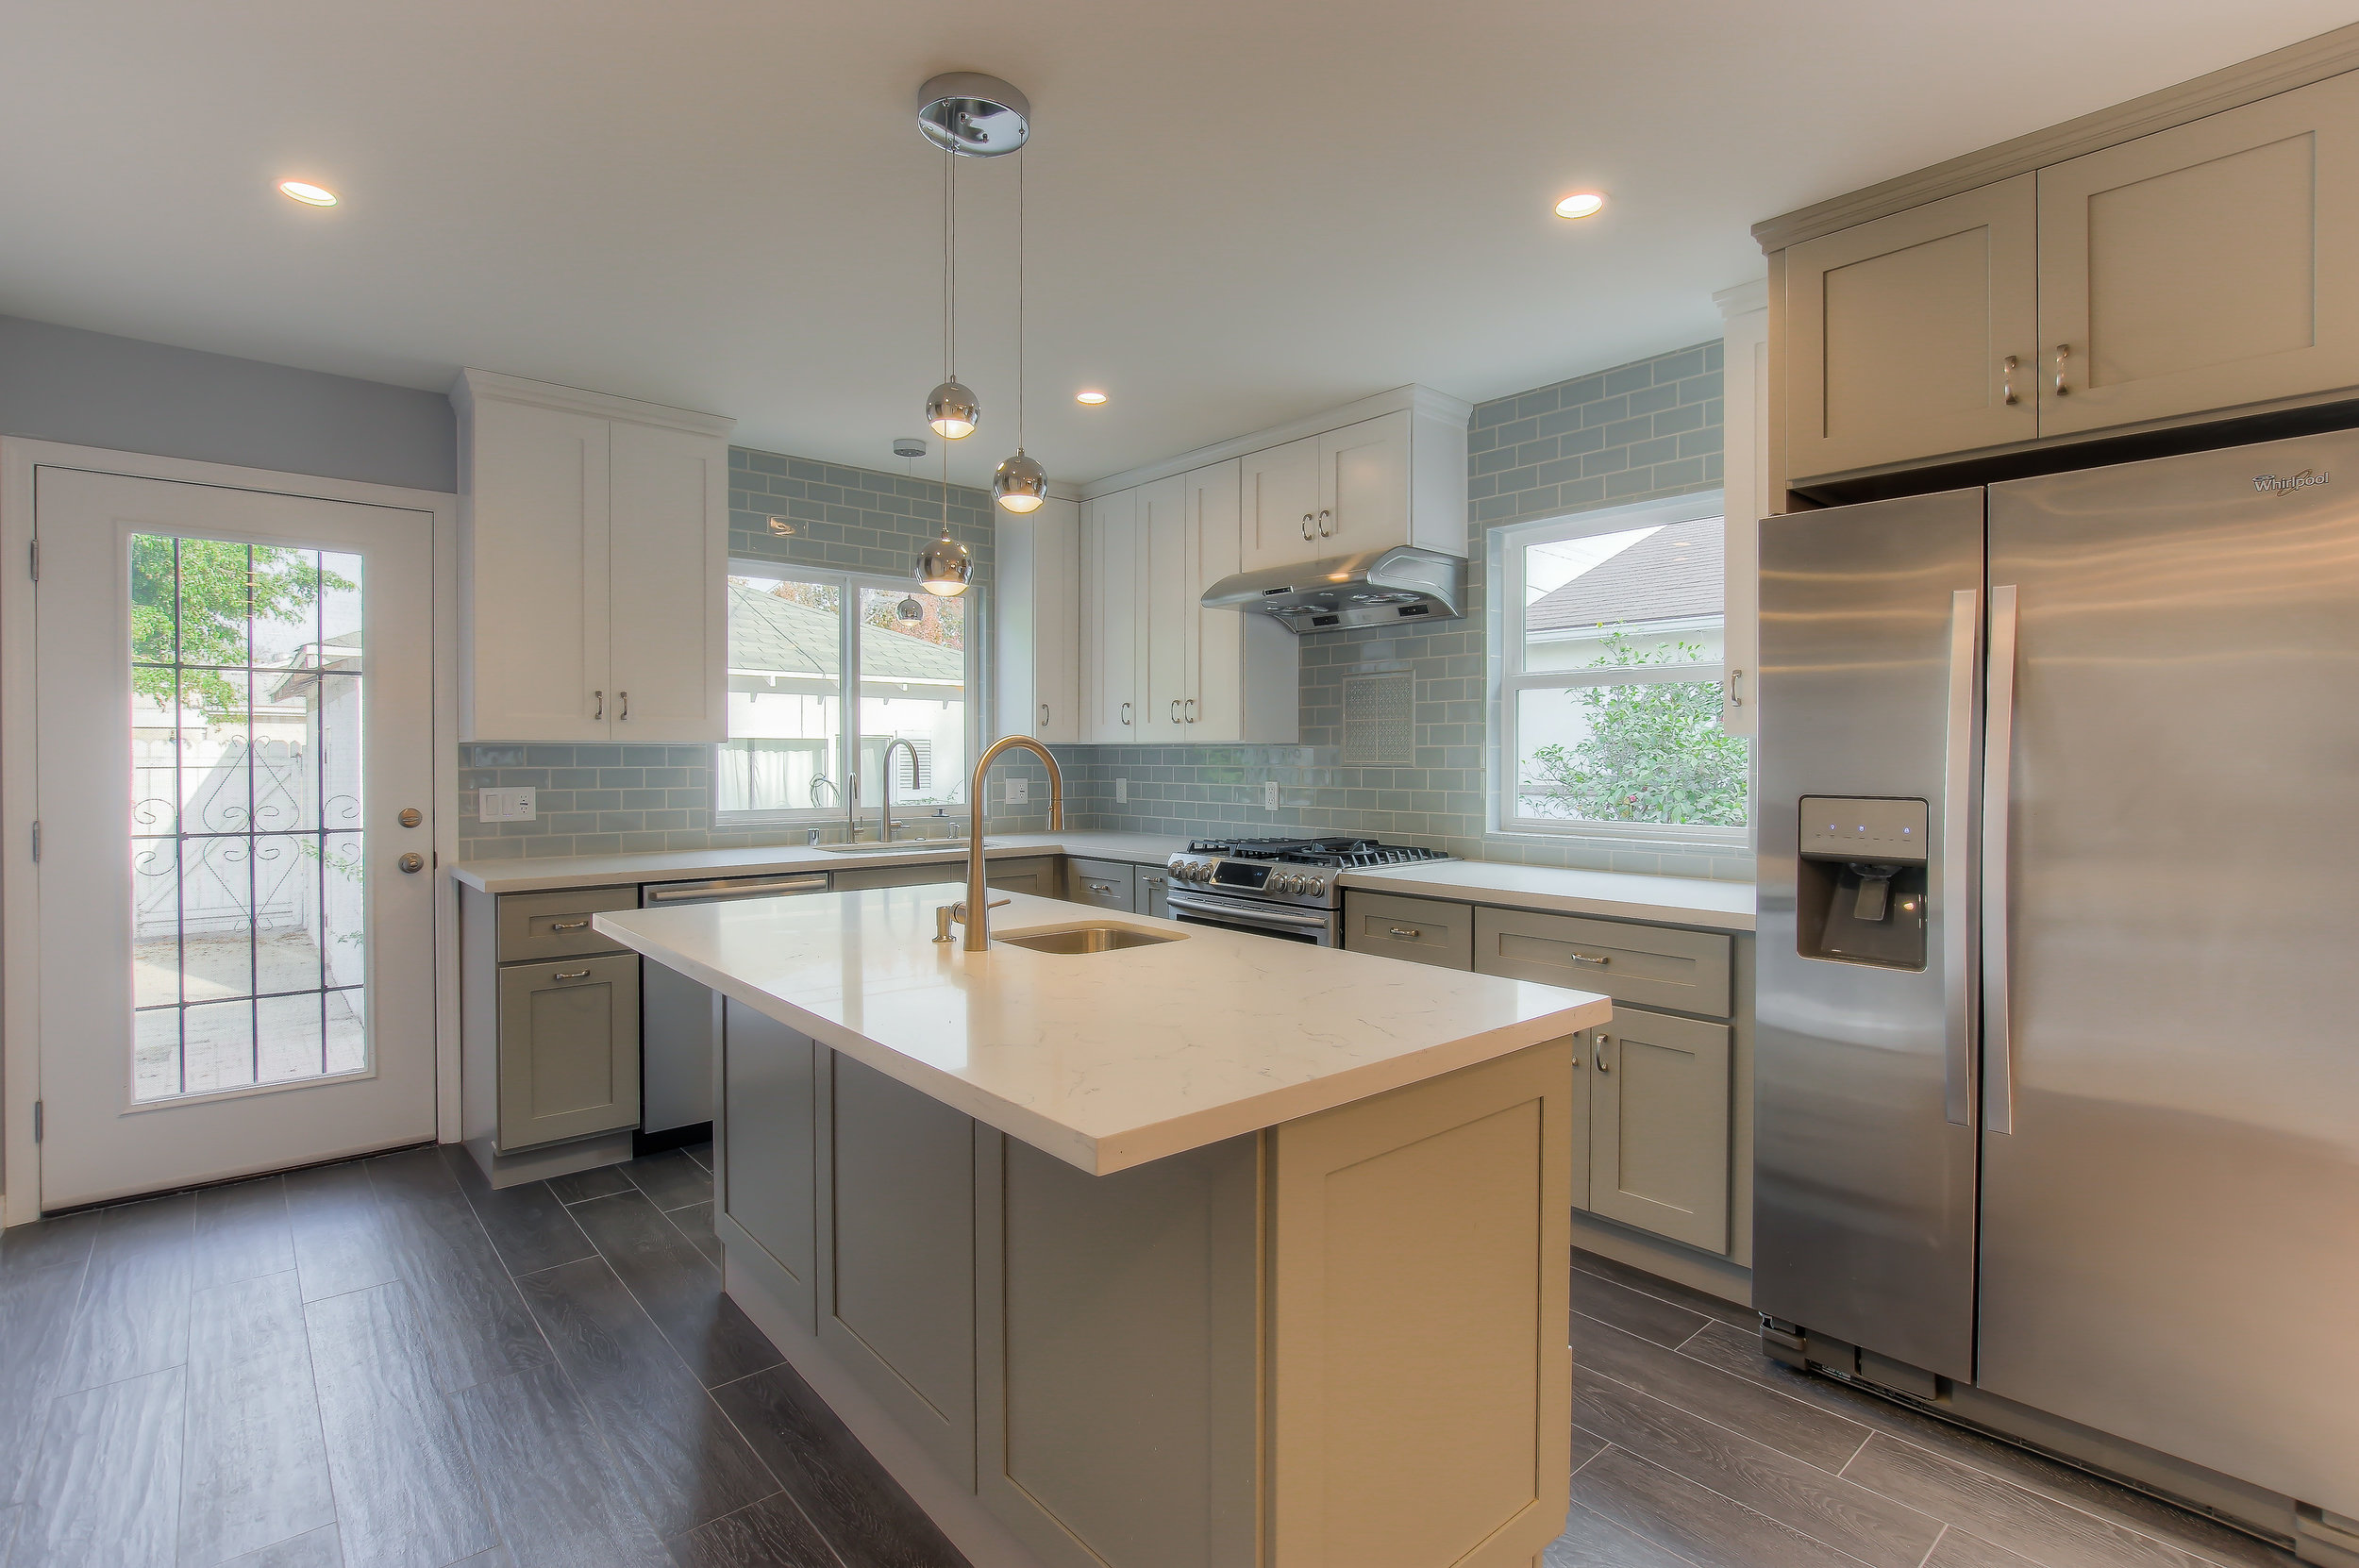 Cheviot Hills kitchen remodel